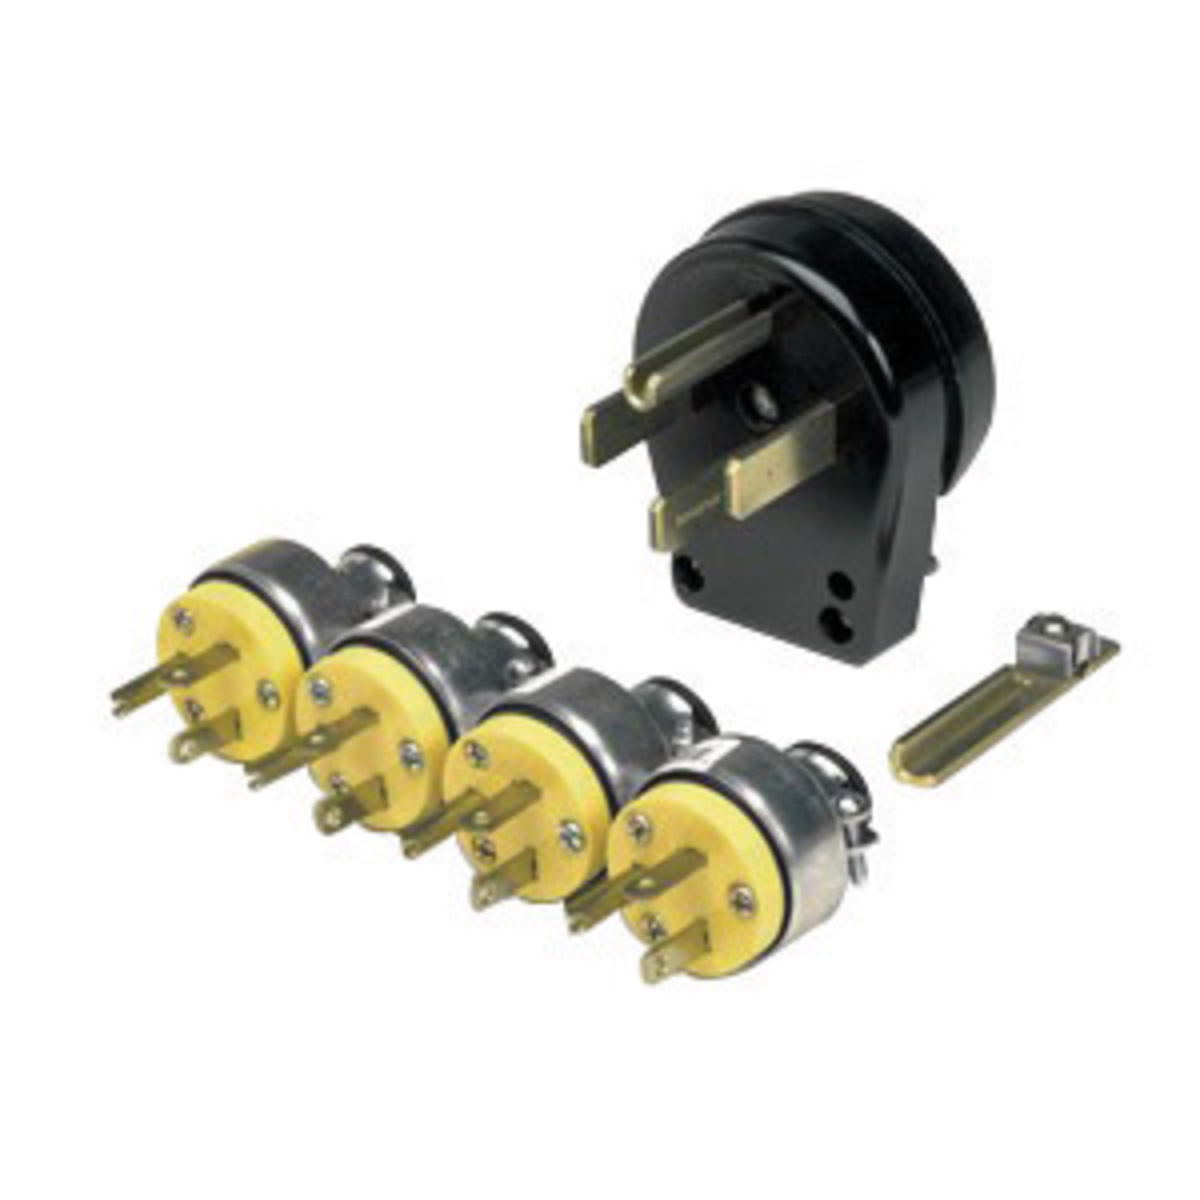 Electric Power Plugs : Airgas link n lincoln electric power plug kit